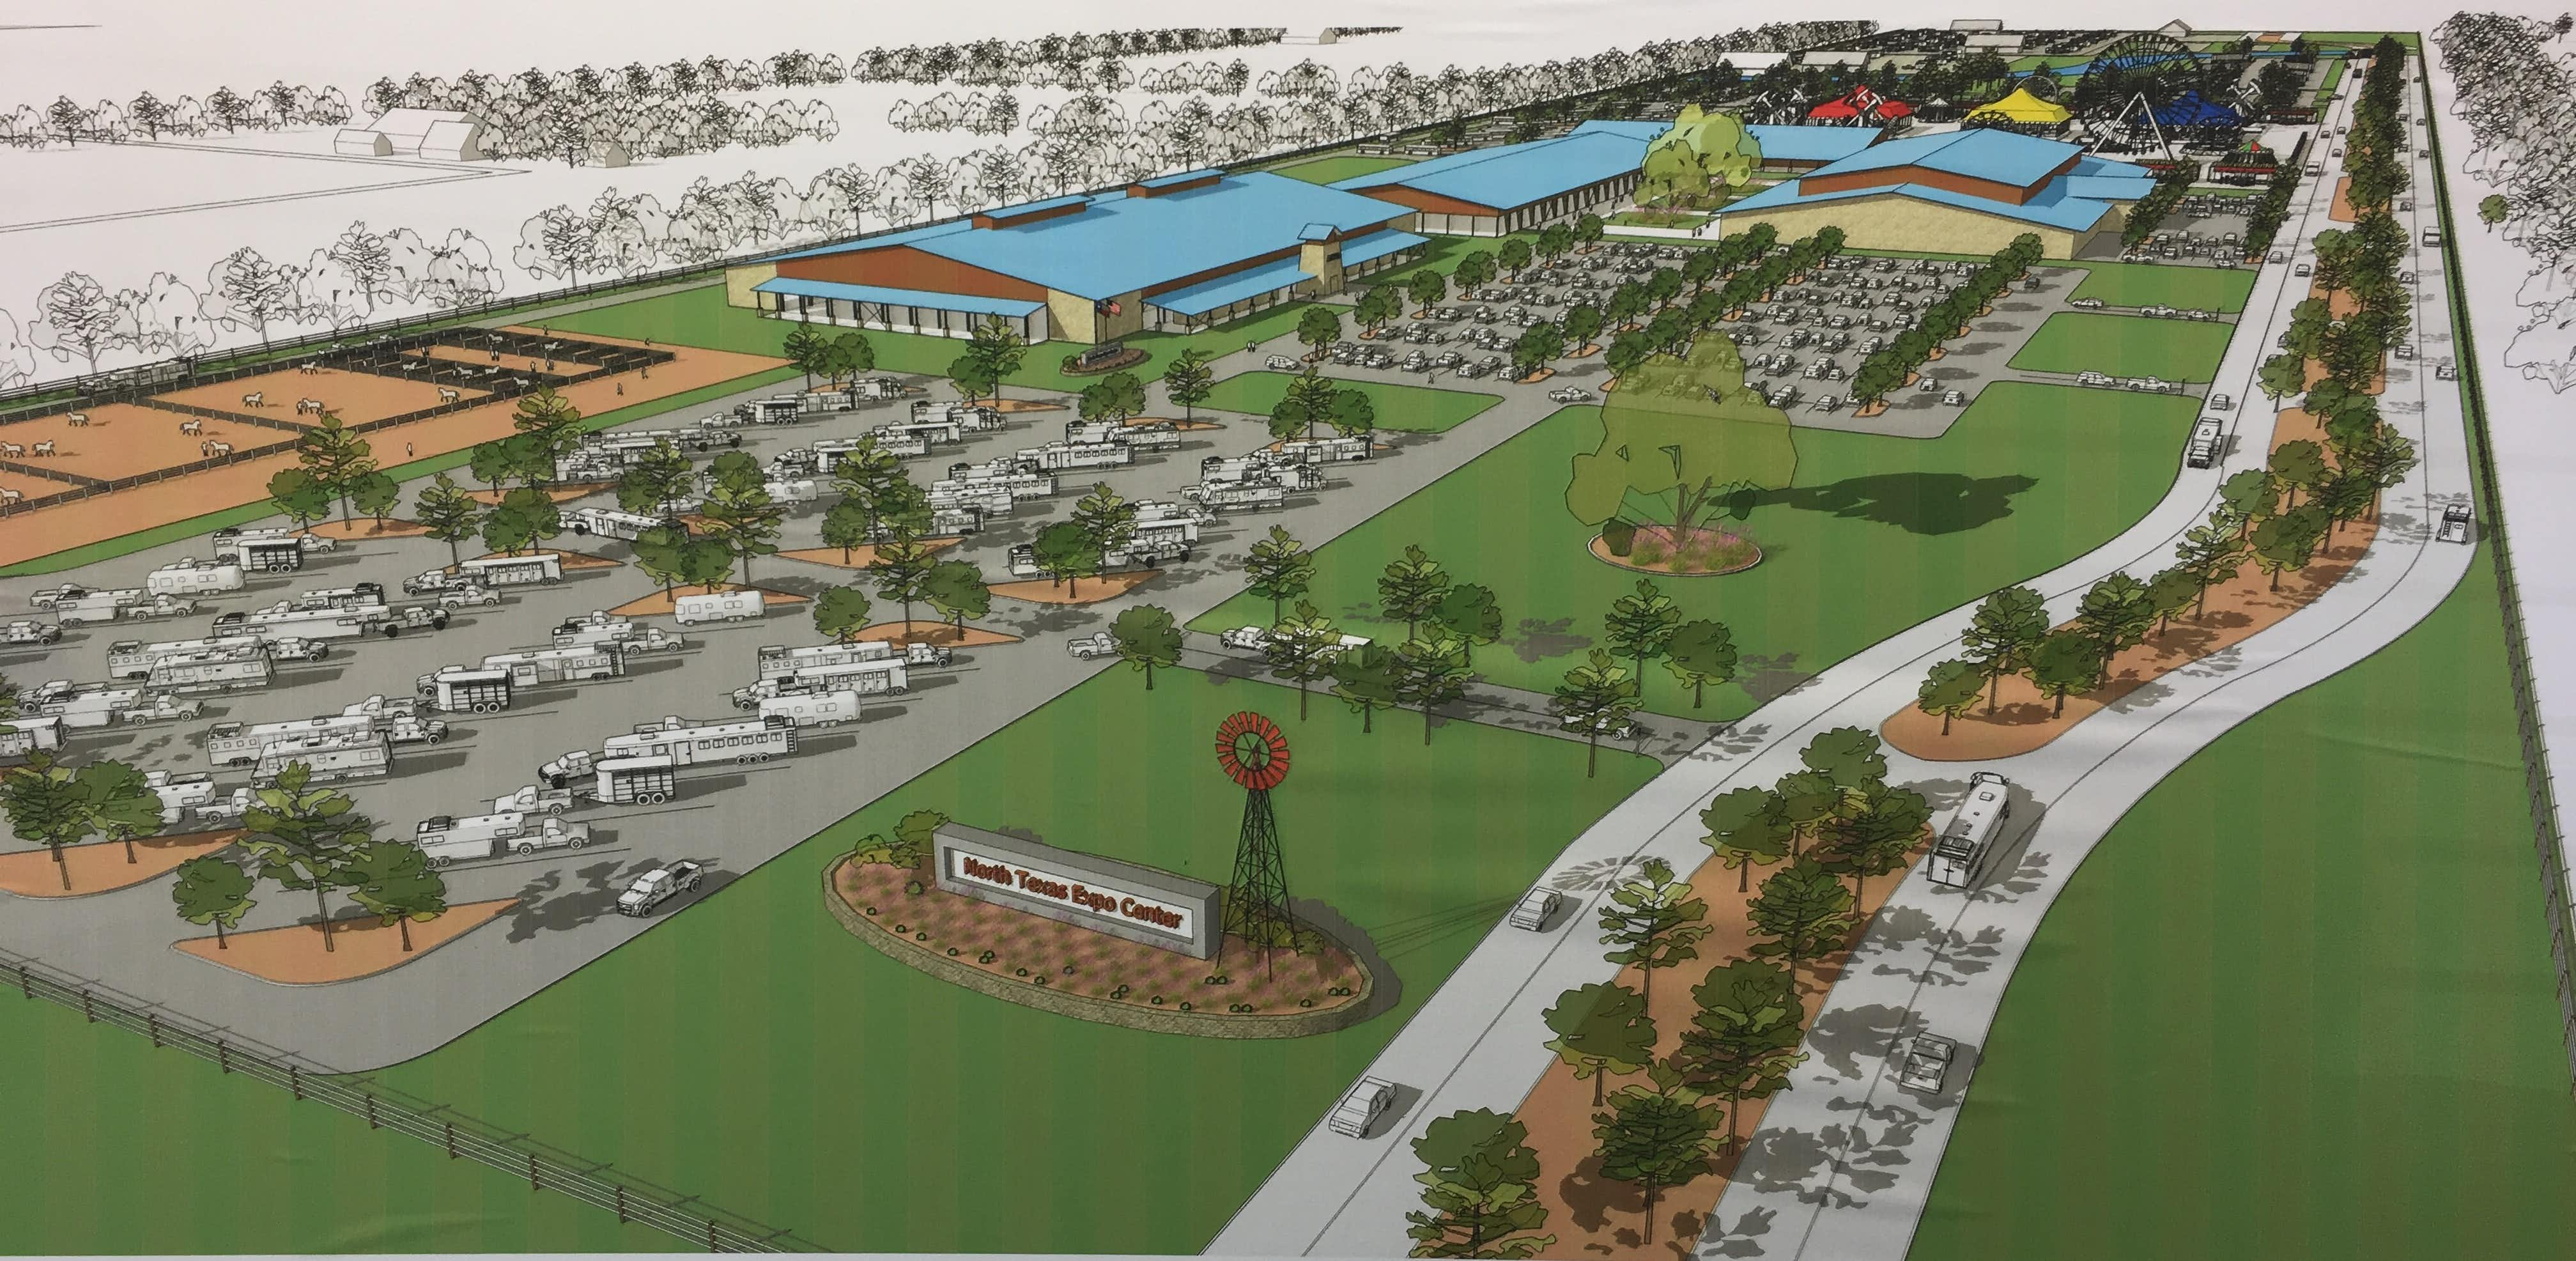 "<p><strong style=""font-size: 1em; background-color: transparent;"">An artist rendering of the North Texas Expo Center plan provided by the North Texas State Fair Association will more than triple the acreage currently available in the North Texas Fairgrounds.</strong></p>Courtesy"